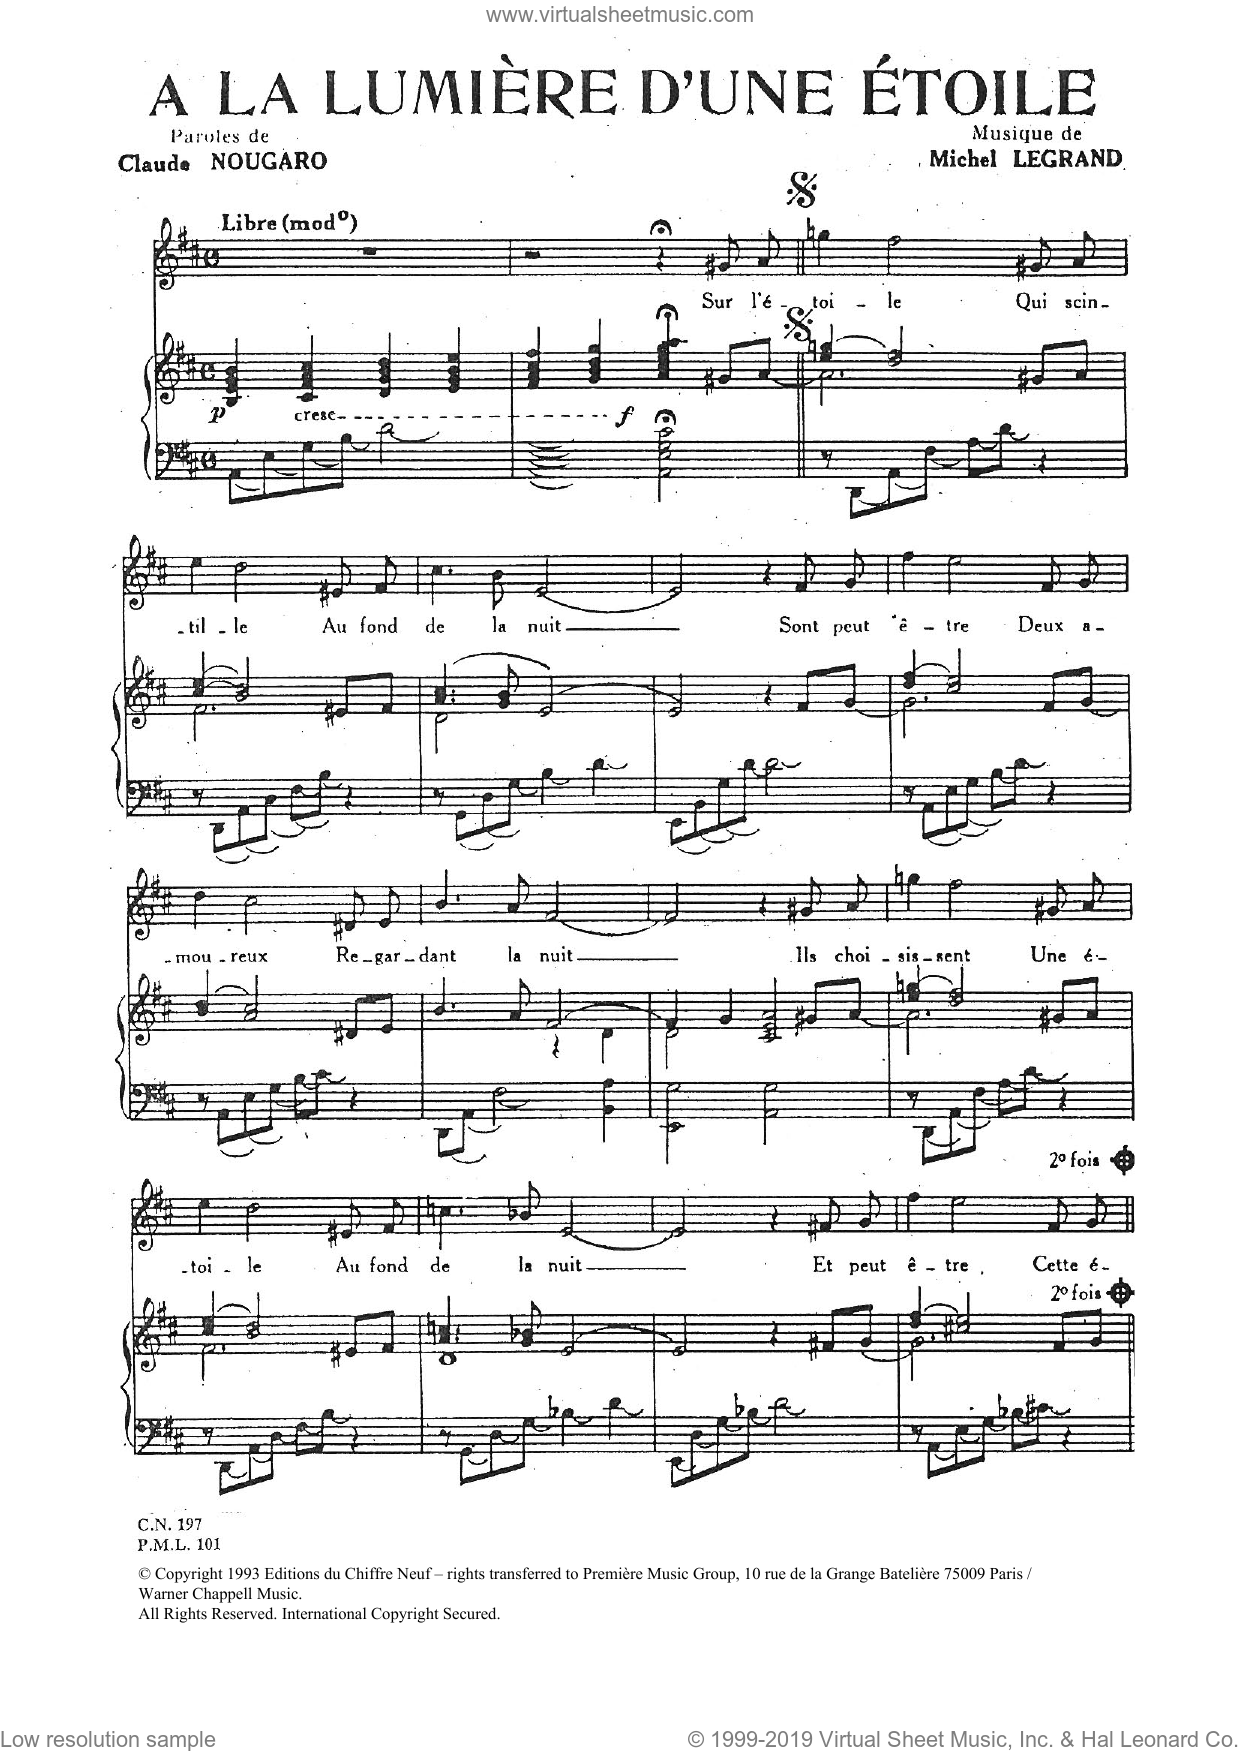 A La Lumiere D'une Etoile sheet music for voice and piano by Michel LeGrand